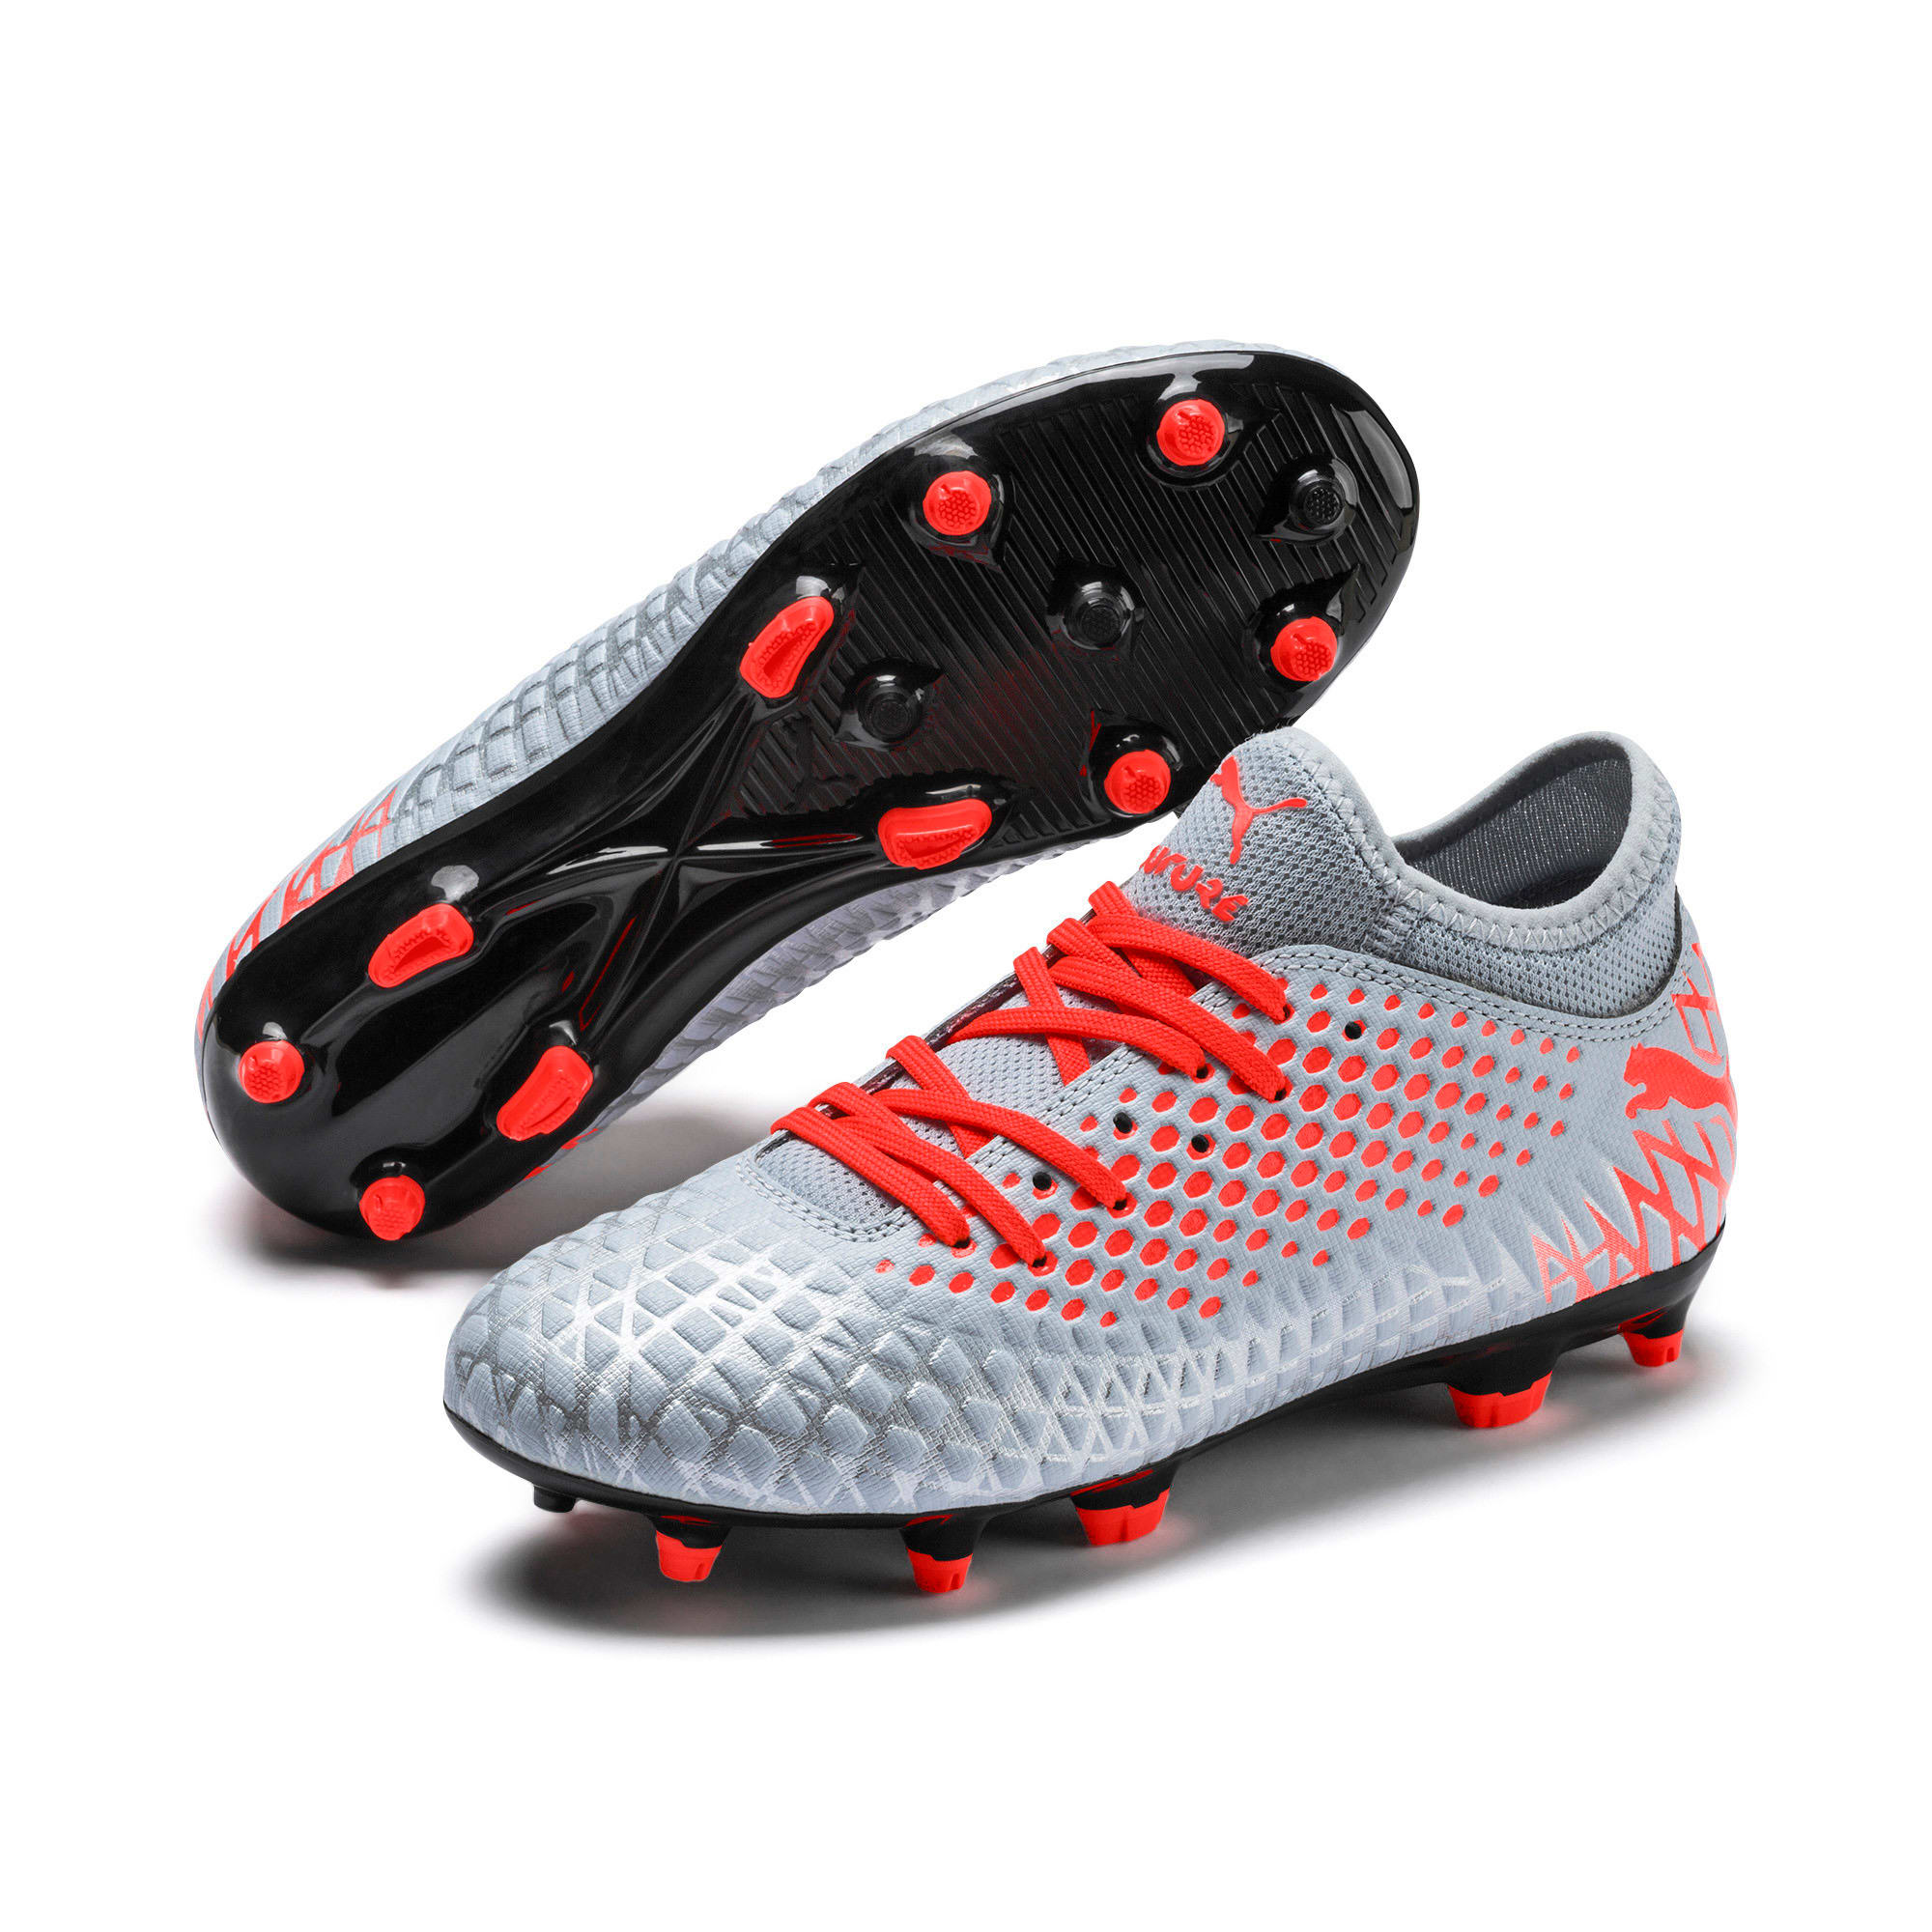 Thumbnail 2 of FUTURE 4.4 FG/AG Soccer Cleats JR, Glacial Blue-Nrgy Red, medium